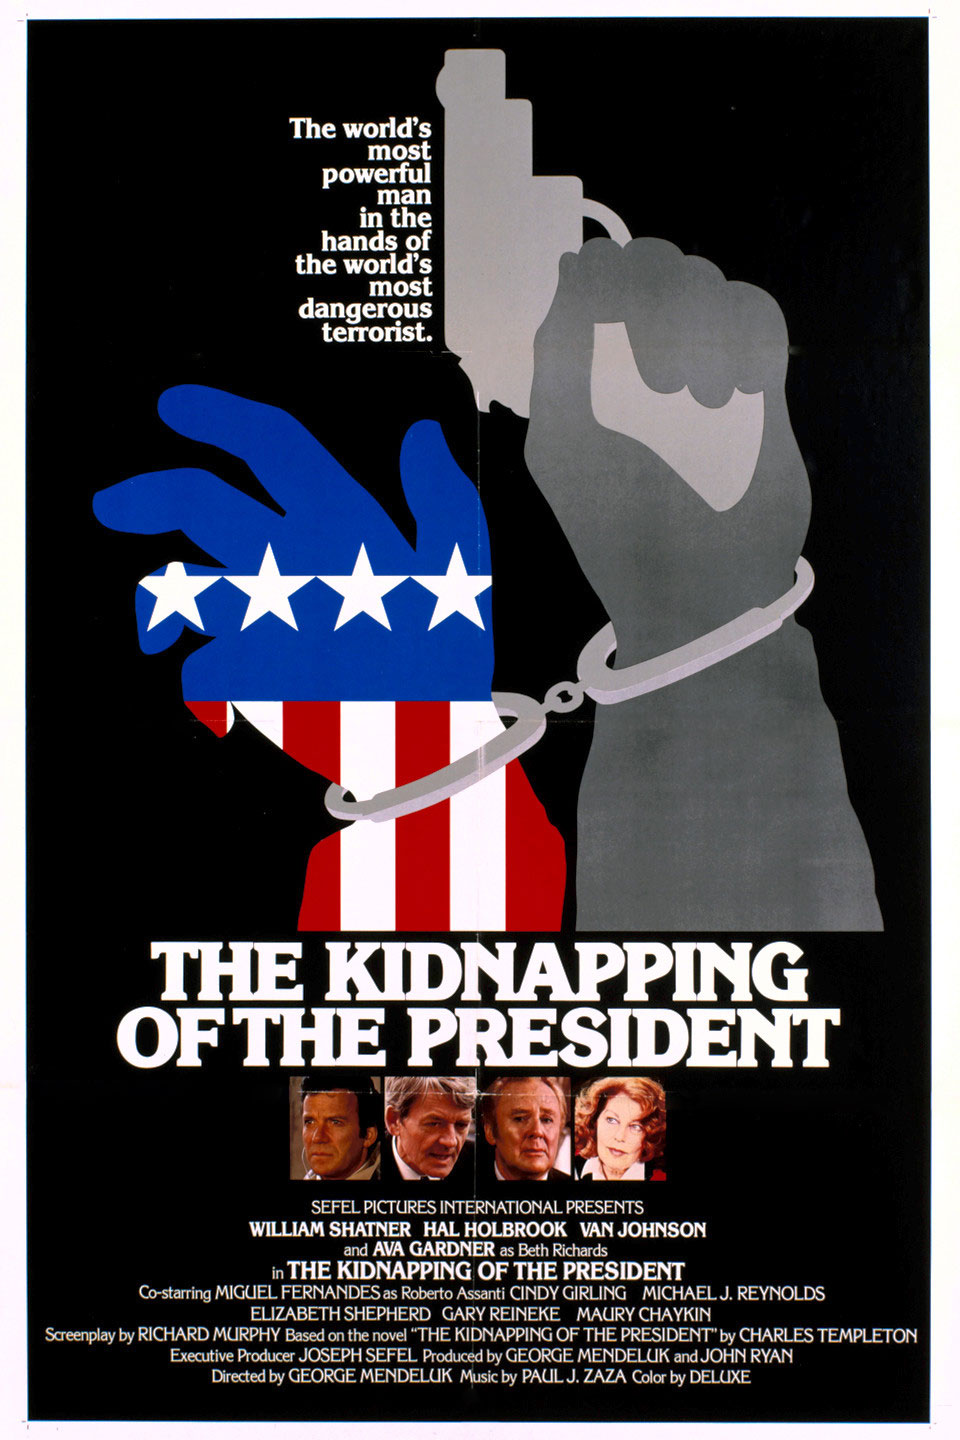 The Kidnapping of the President movie poster